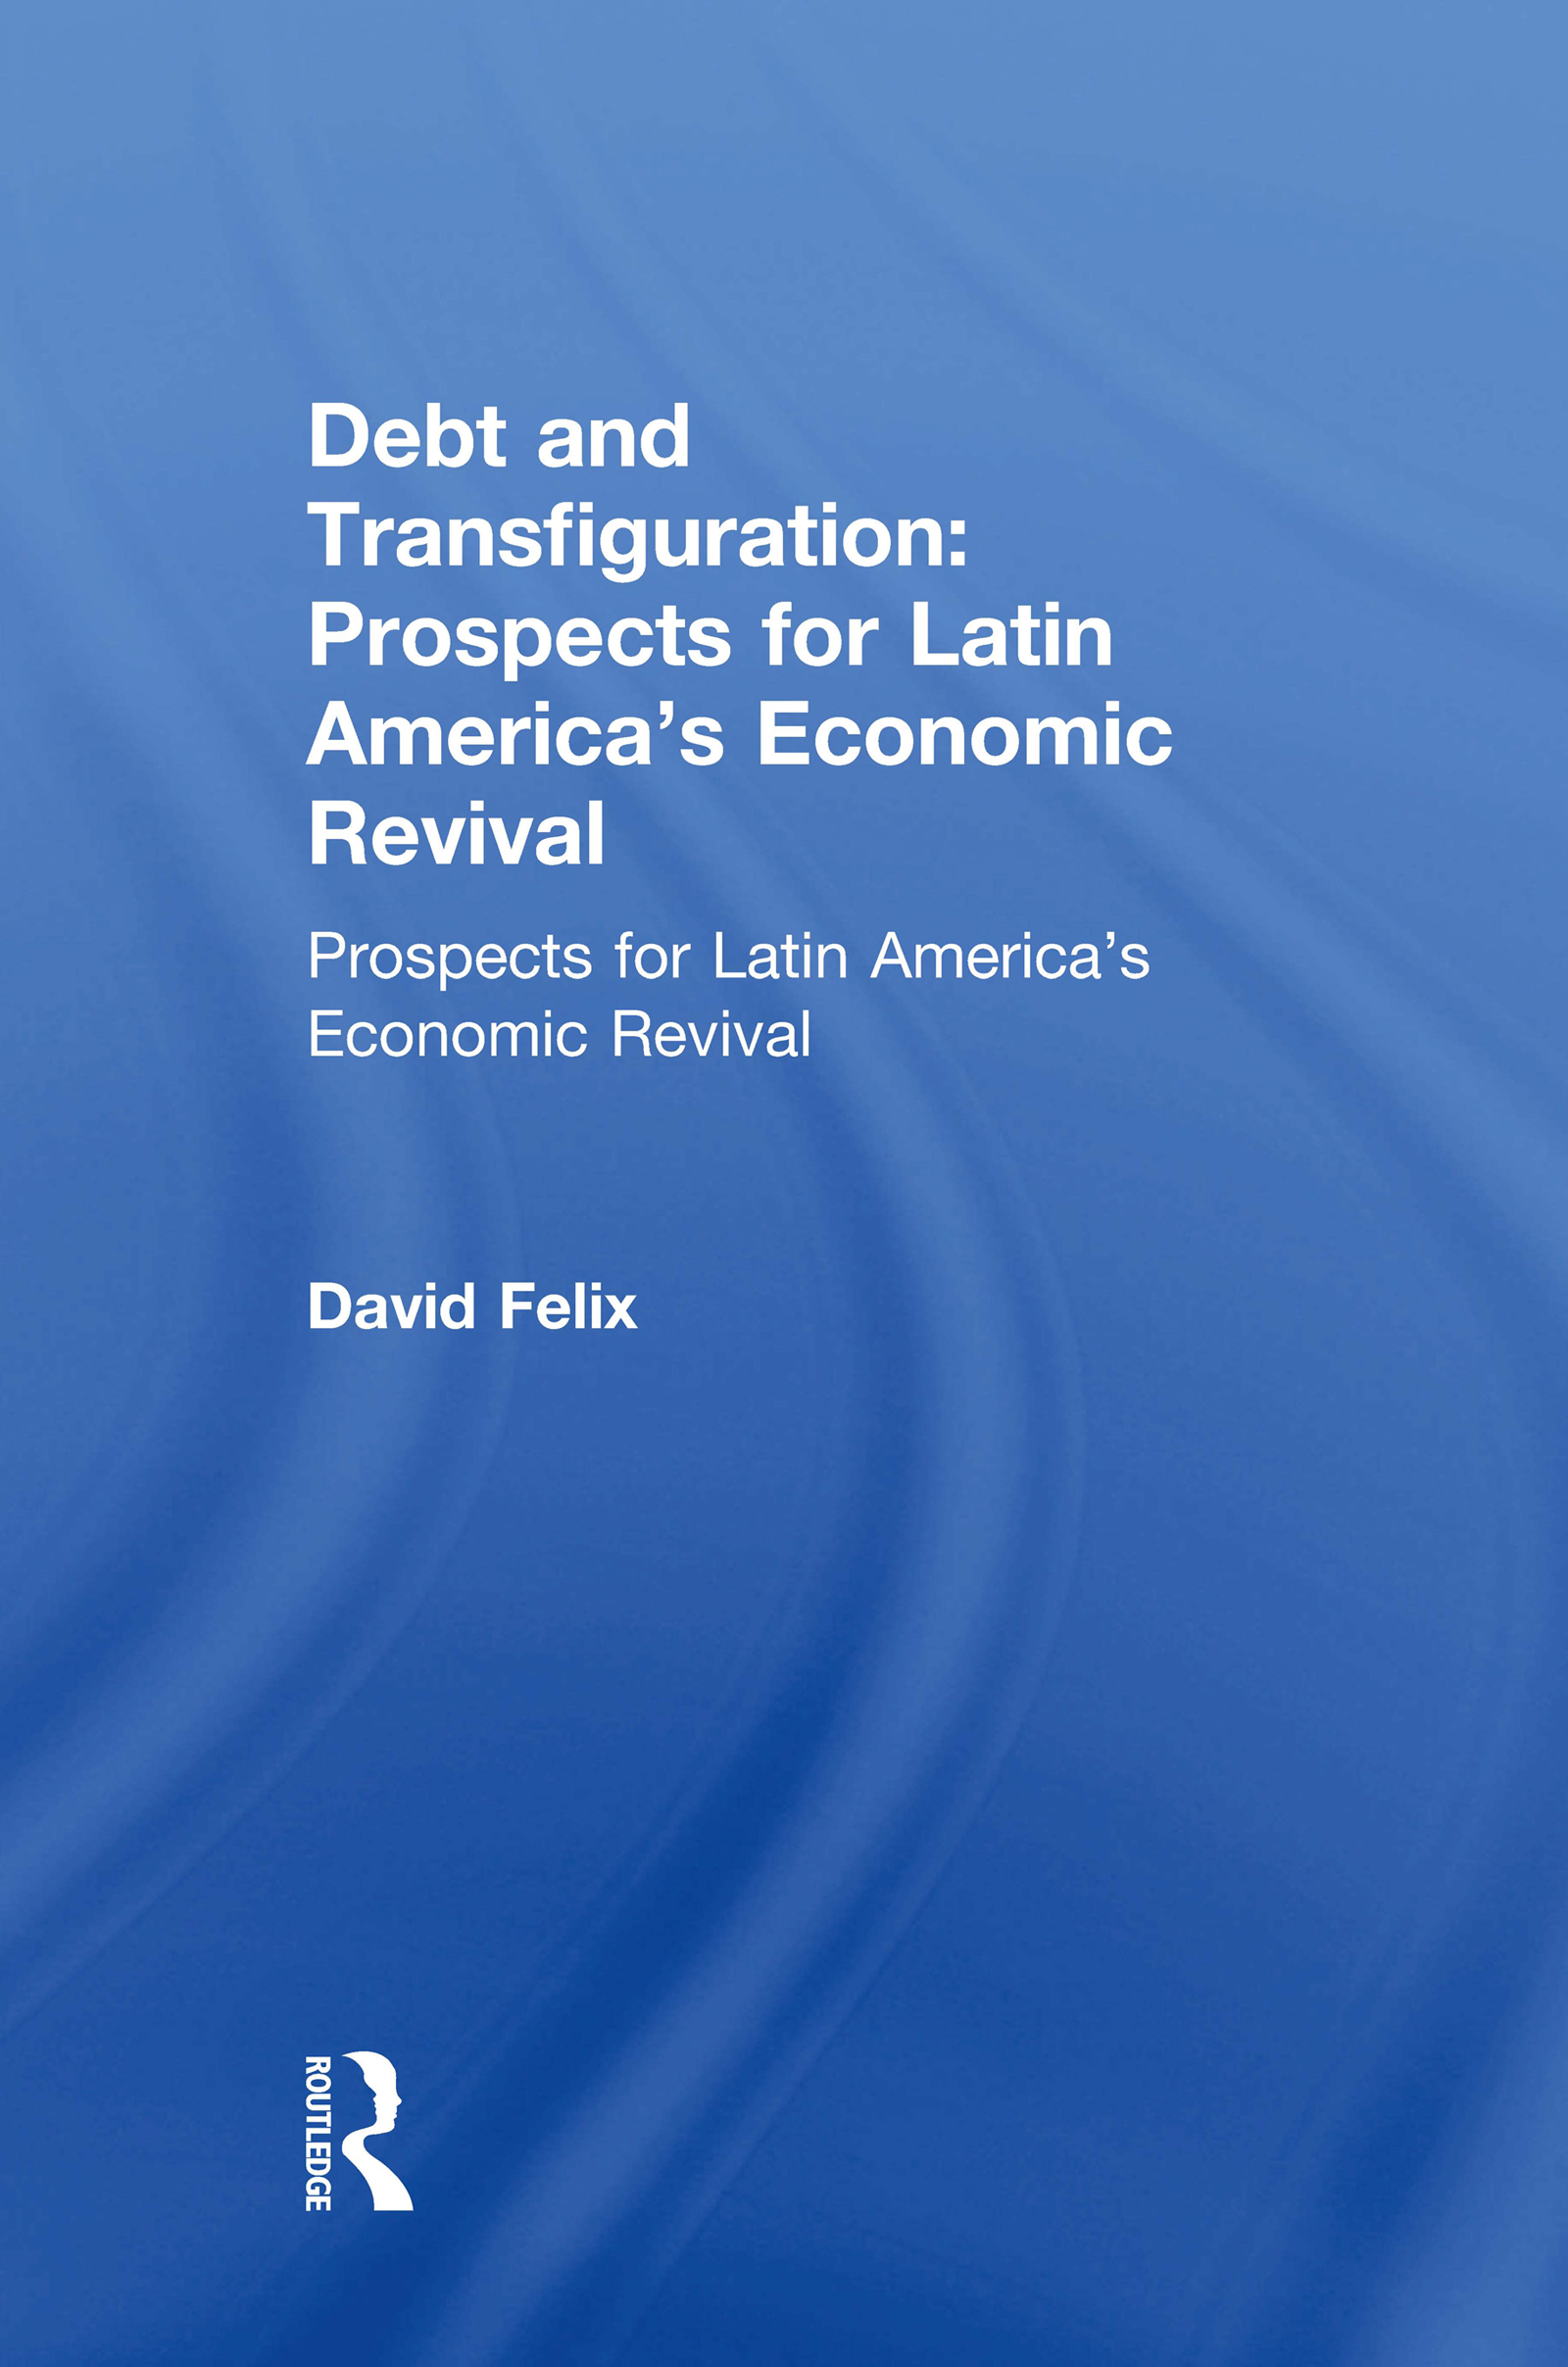 Debt and Transfiguration: Prospects for Latin America's Economic Revival: Prospects for Latin America's Economic Revival book cover